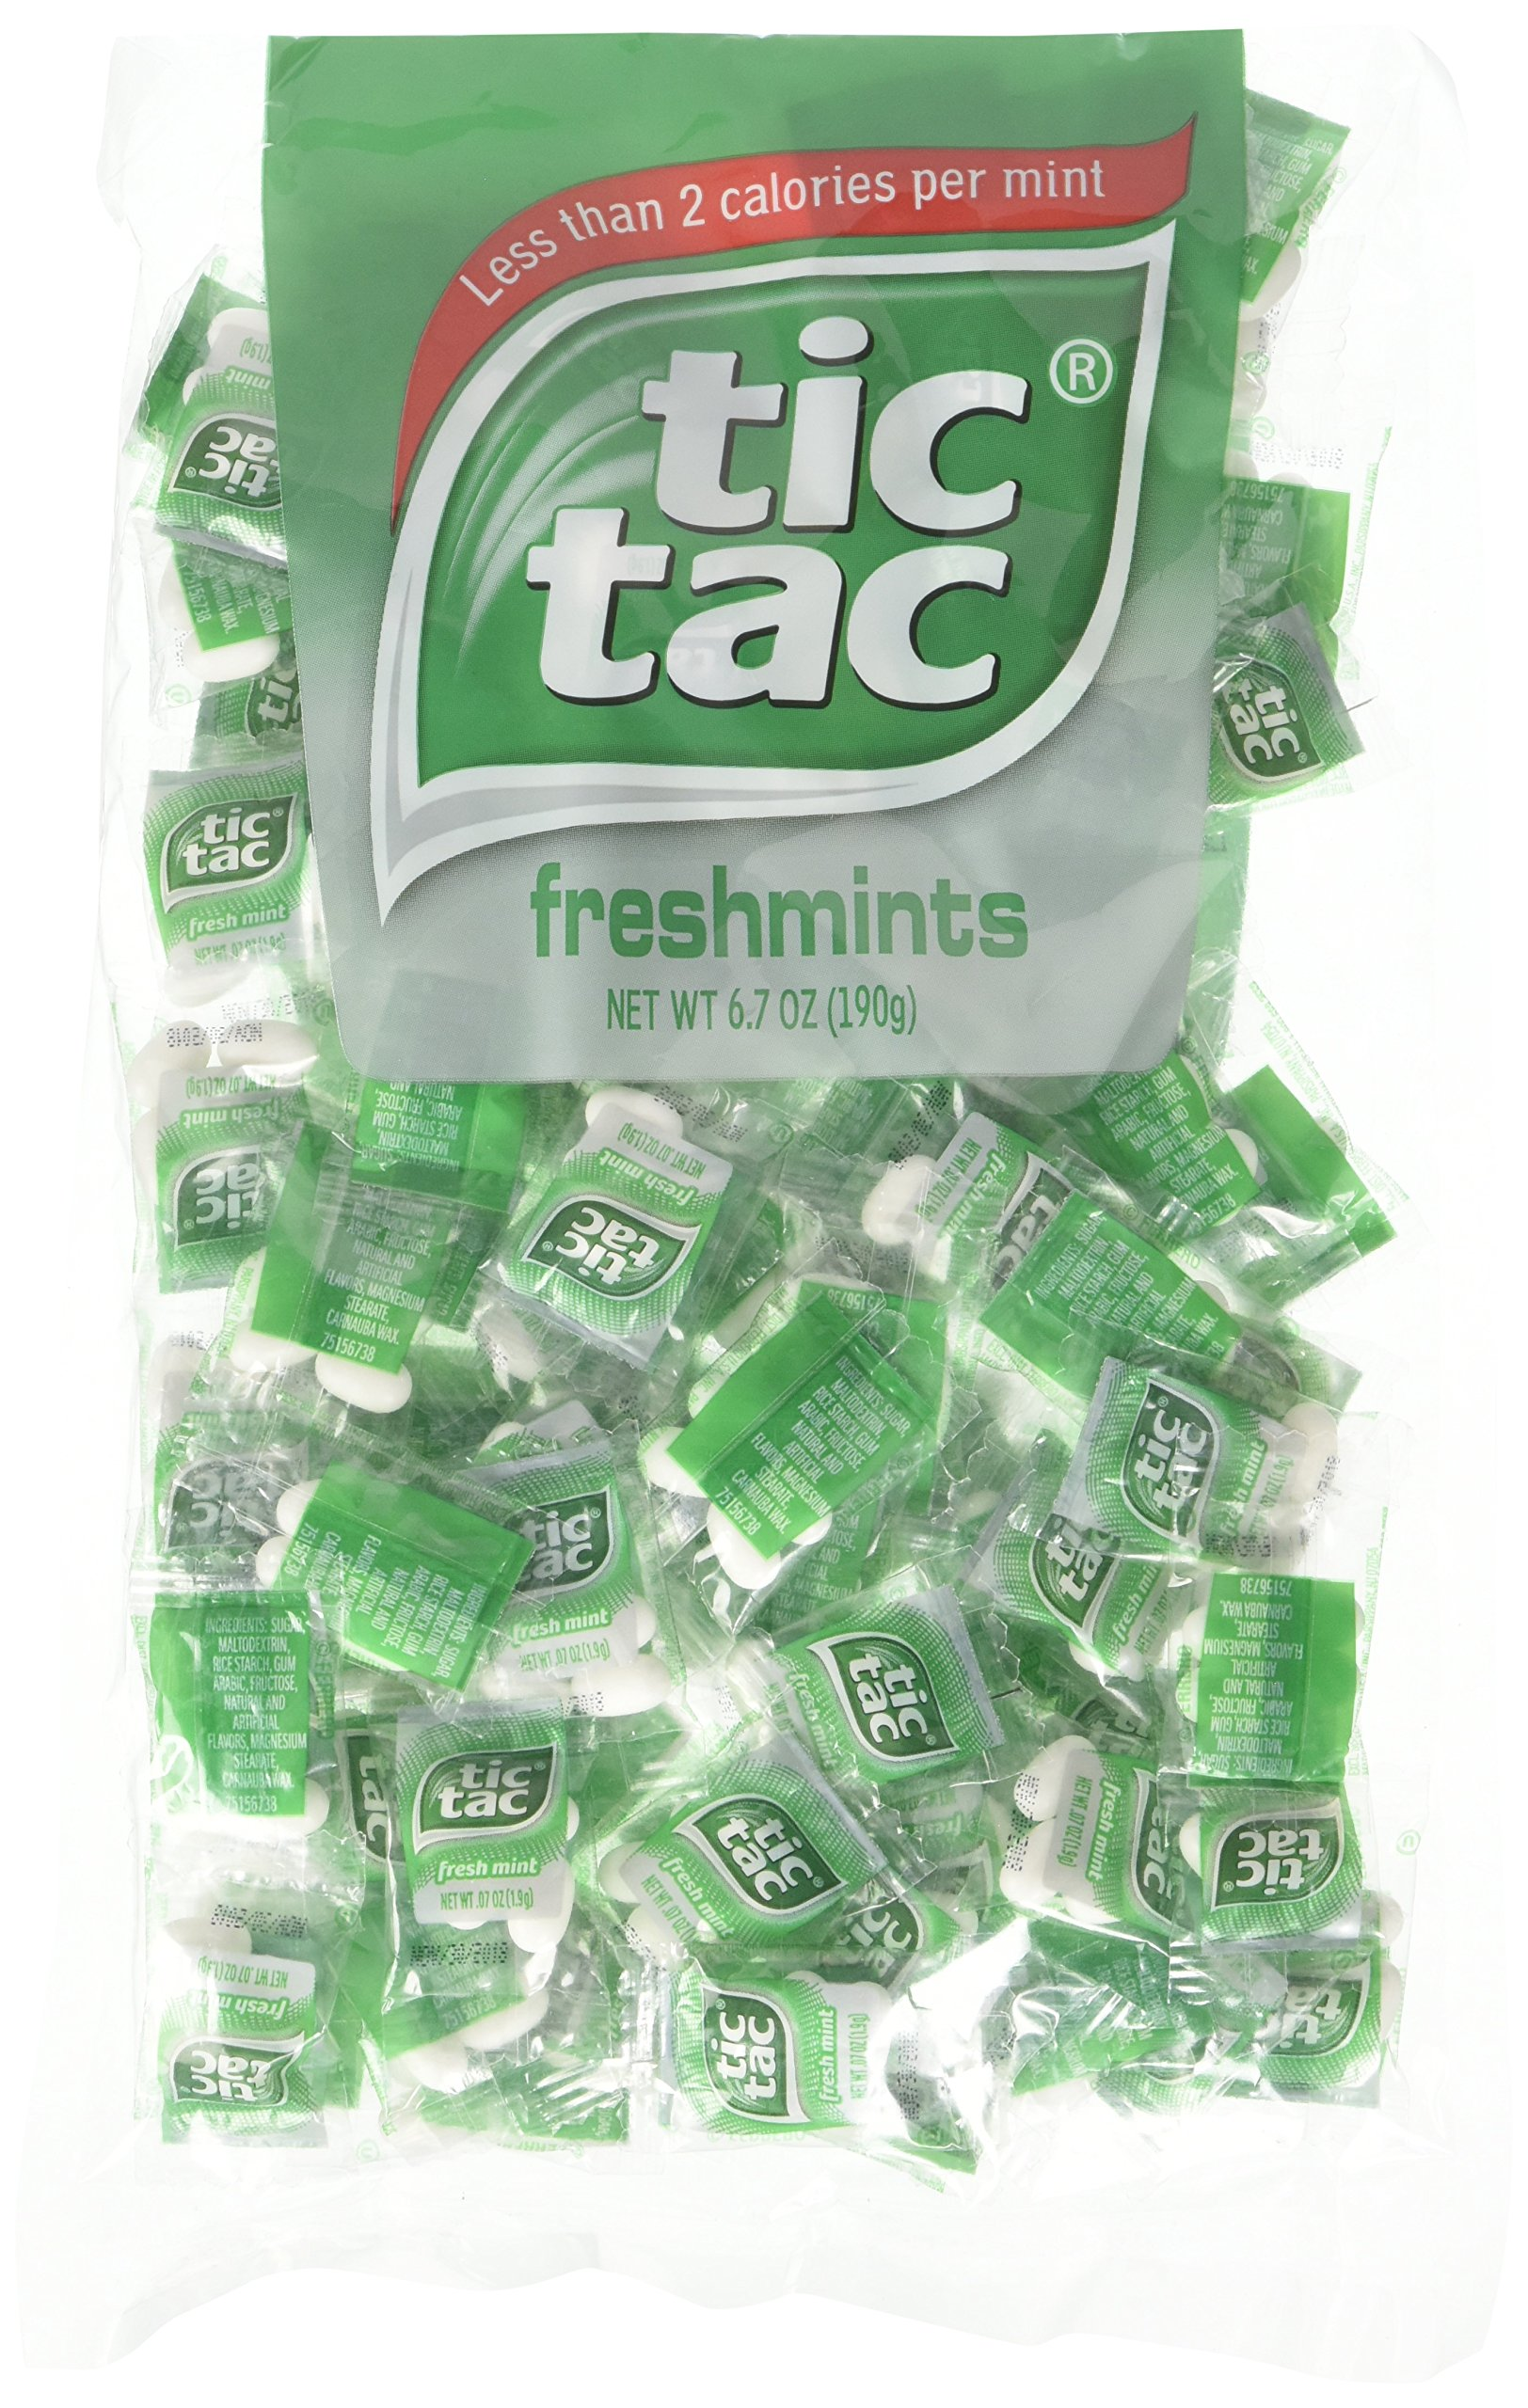 tic tac Freshmint Pillow Pack, 100Count bag (Pack 2) 200 individually wrapped Pack of 4 mints each by Tic Tac